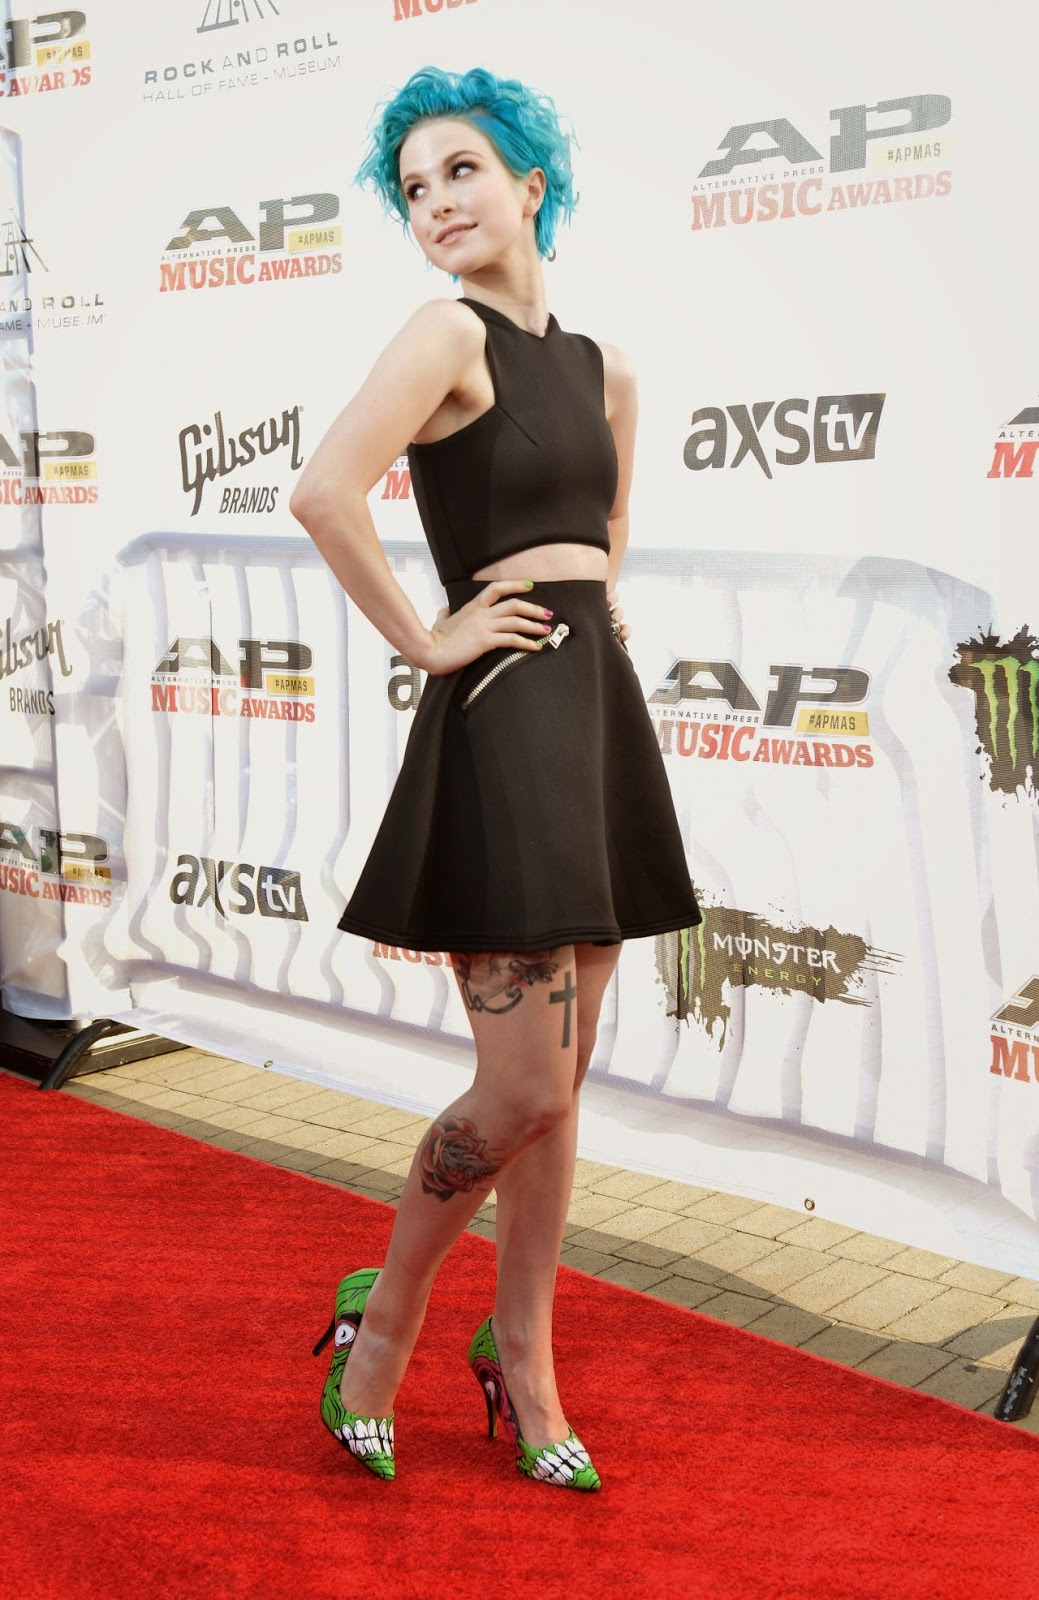 Hayley Williams flaunts a punk rock style at the 2014 Alternative Press Music Awards